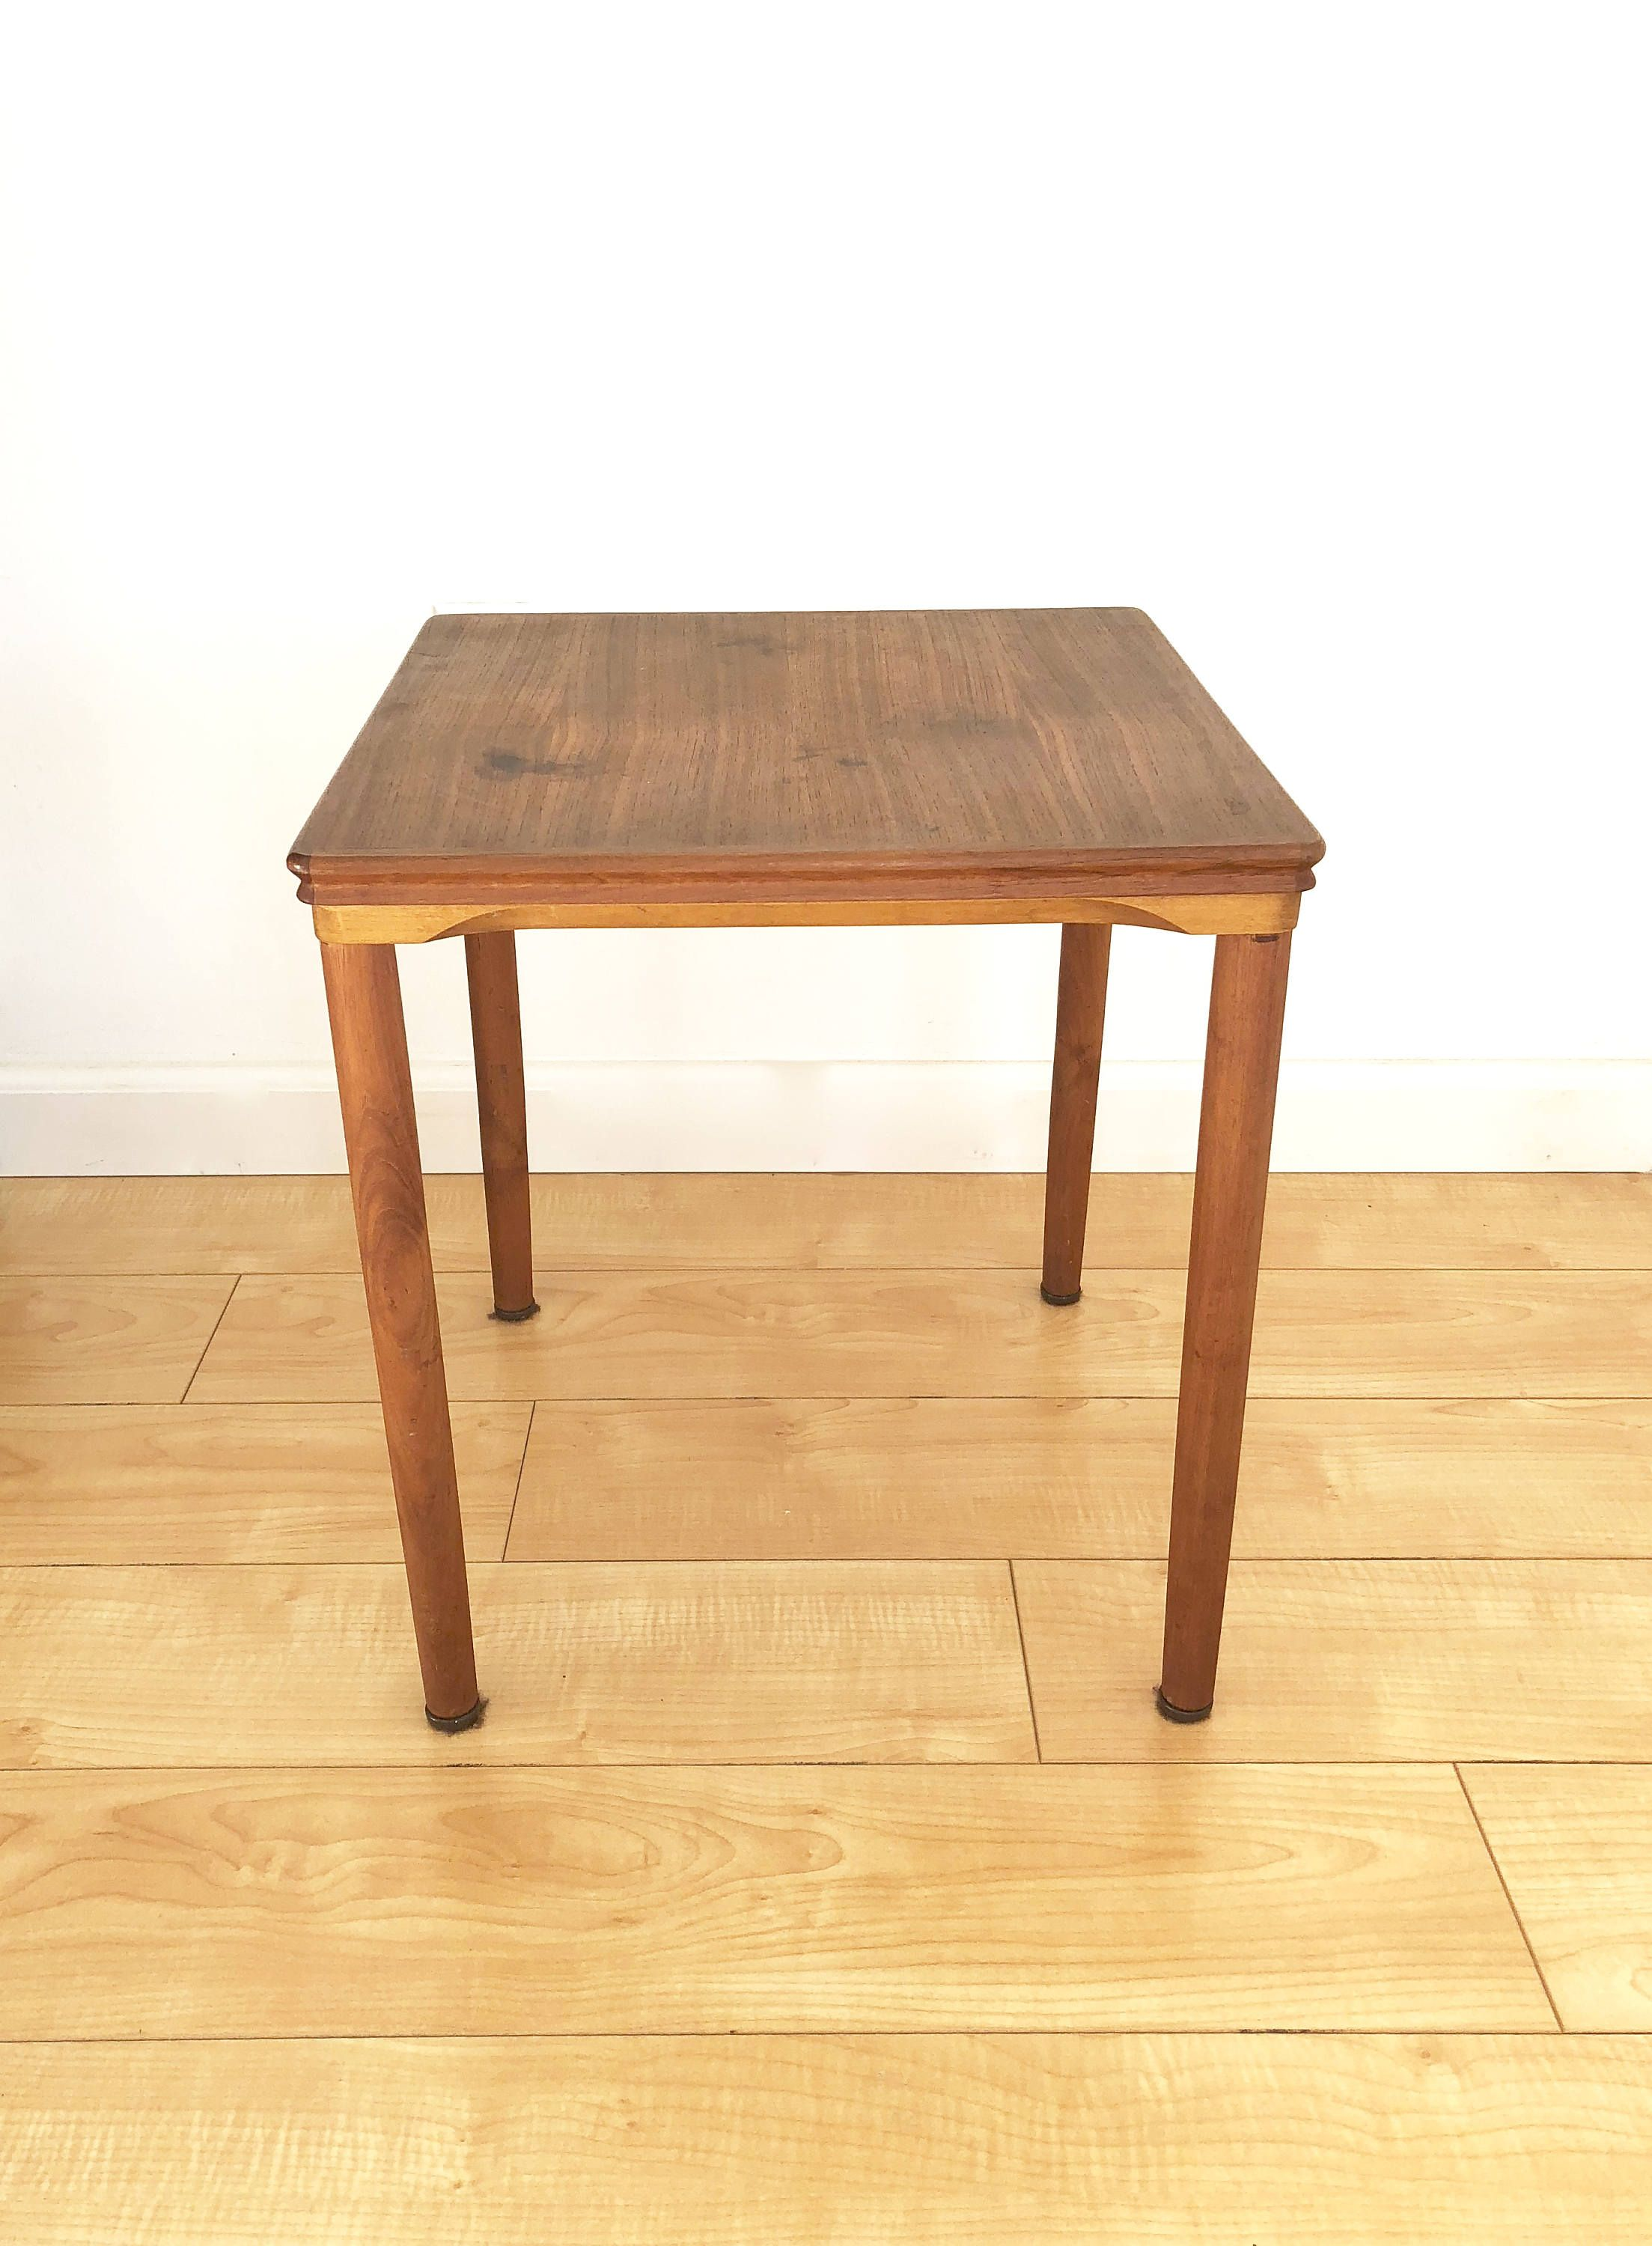 Teak Mid-Century Modern Table by Mobelfabrikken Toften of Denmark by ProvinceShop on Etsy